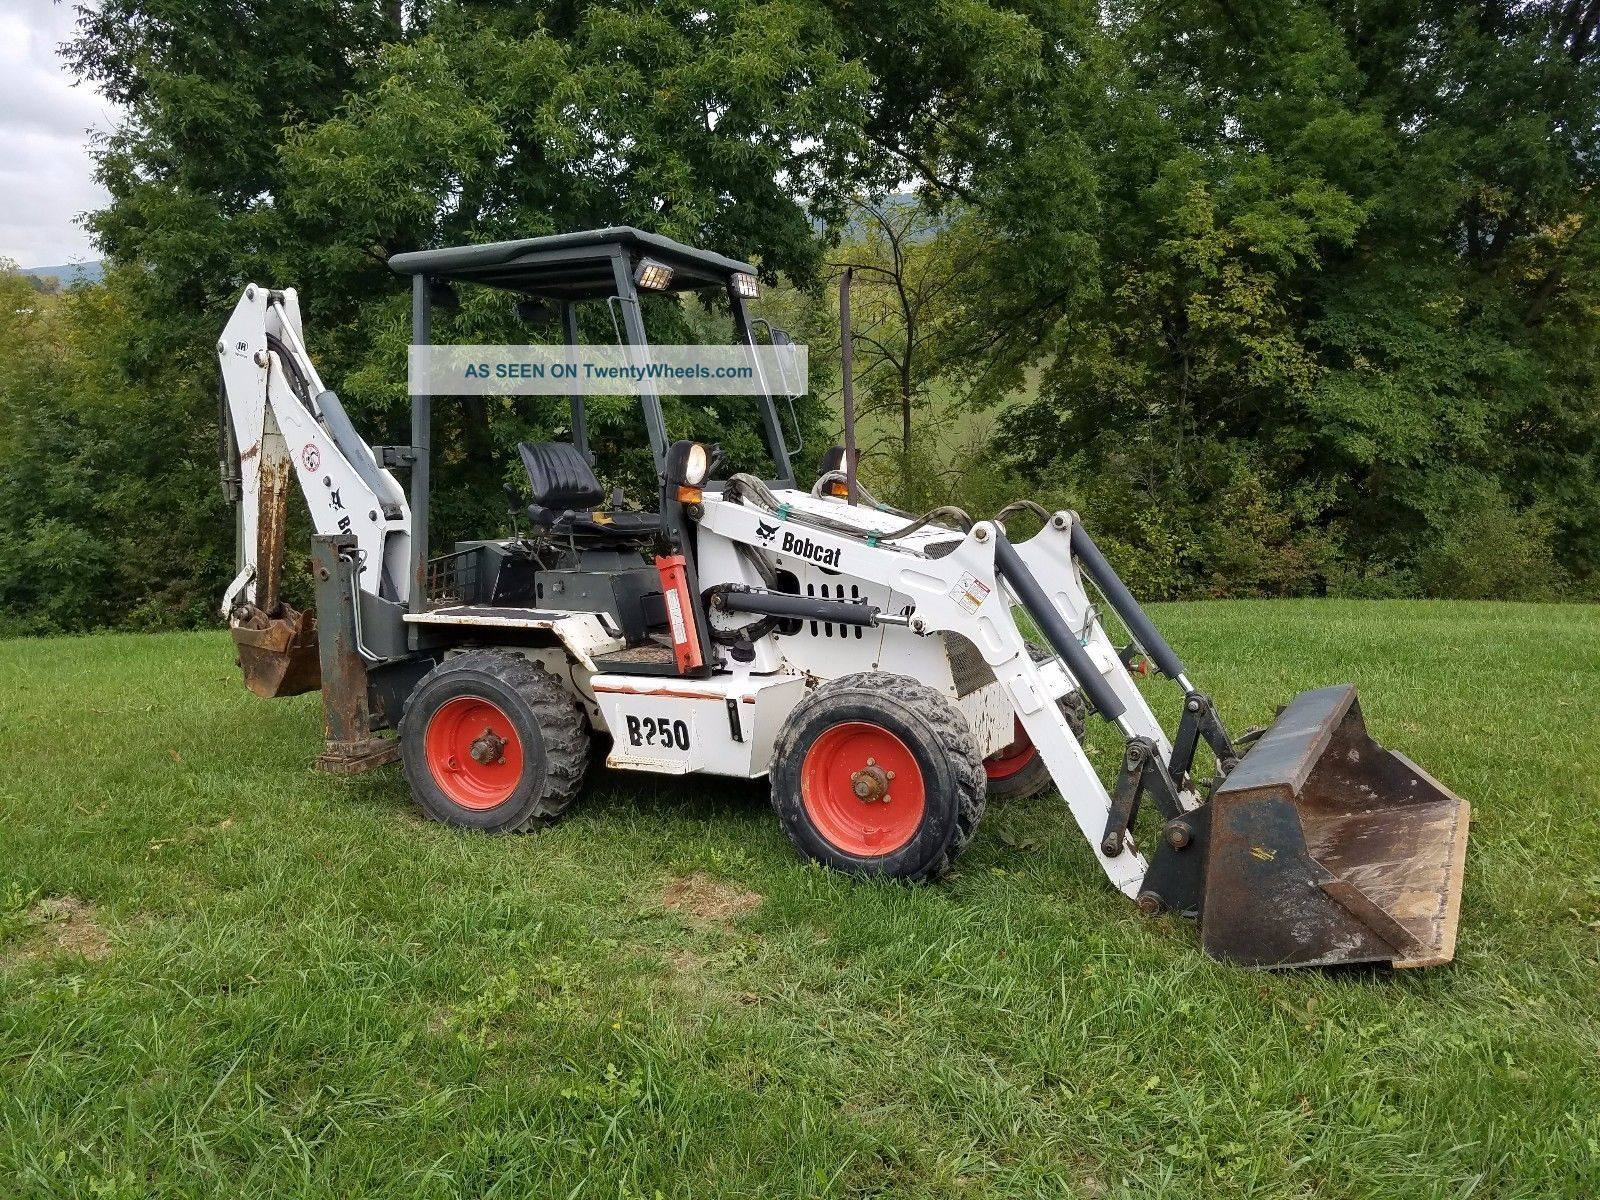 2006 Bobcat B250 Mini Compact Loader Backhoe Excavator Hydraulic Plumbed Tractor Backhoe Loaders photo